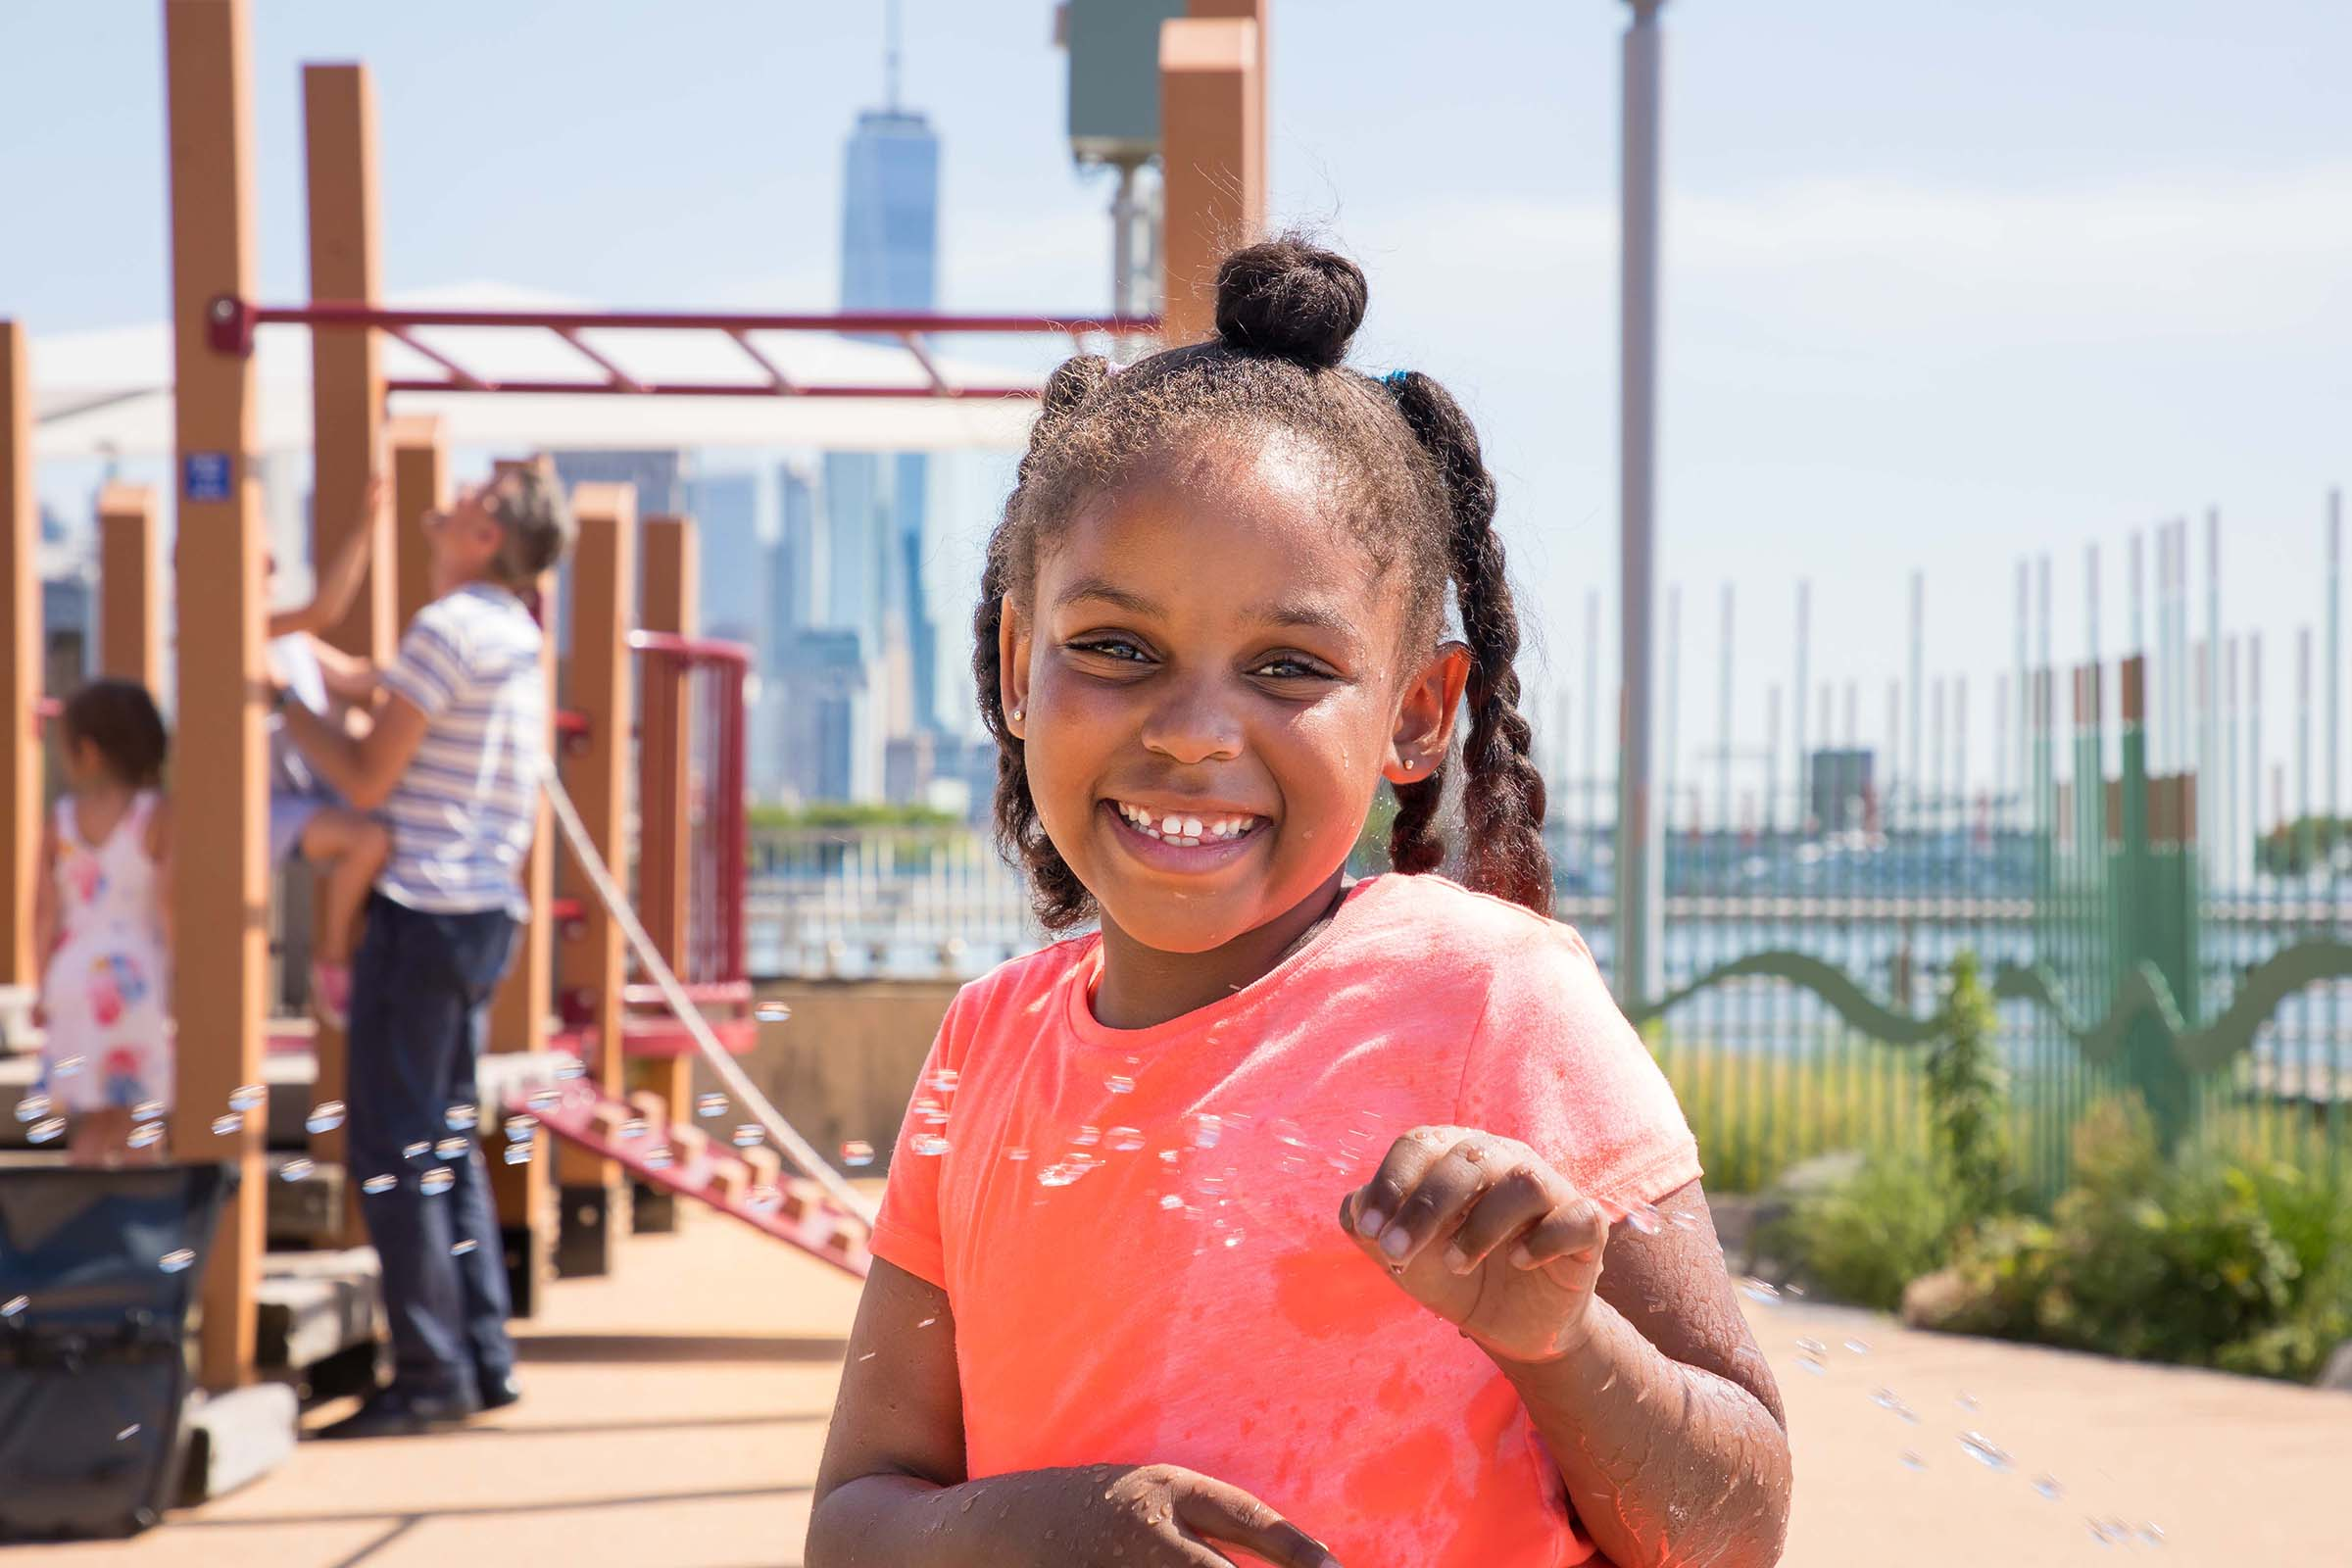 A young girl enjoying bubbles at Pier 51's playground